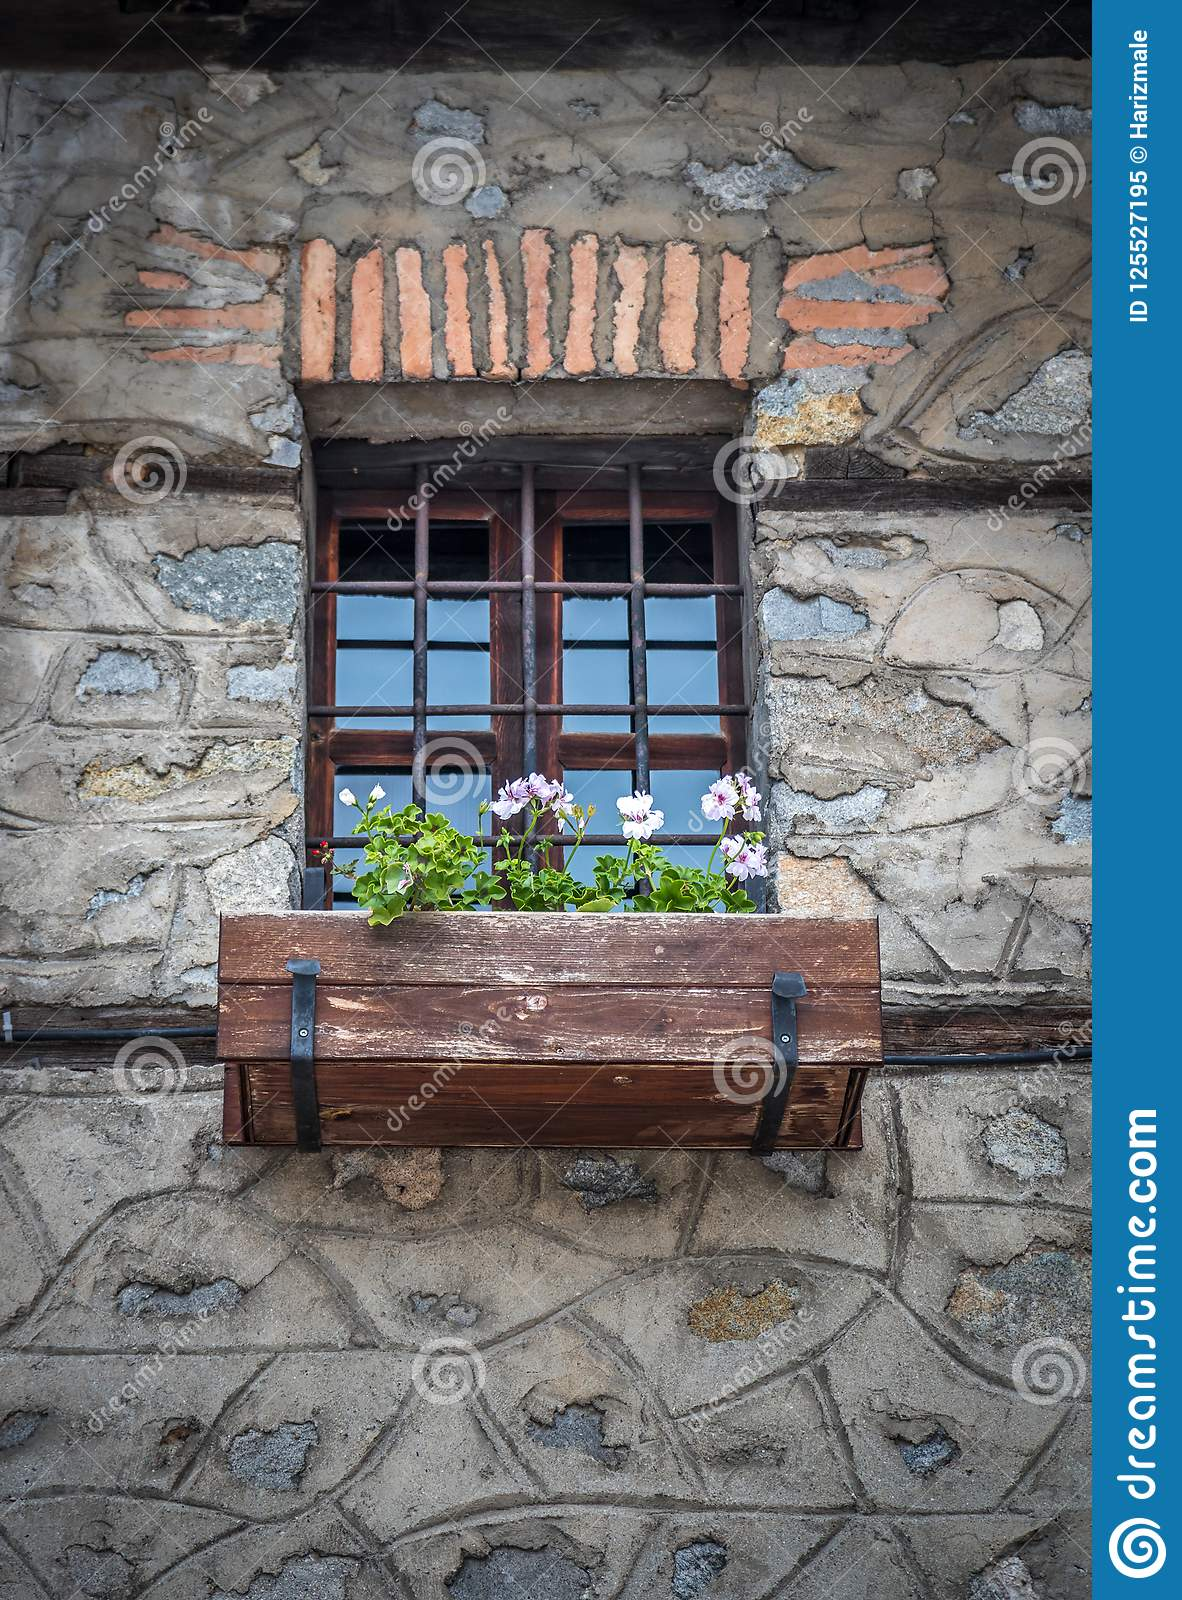 Old Vintage Window With Iron Bars And Flowers In The Pot